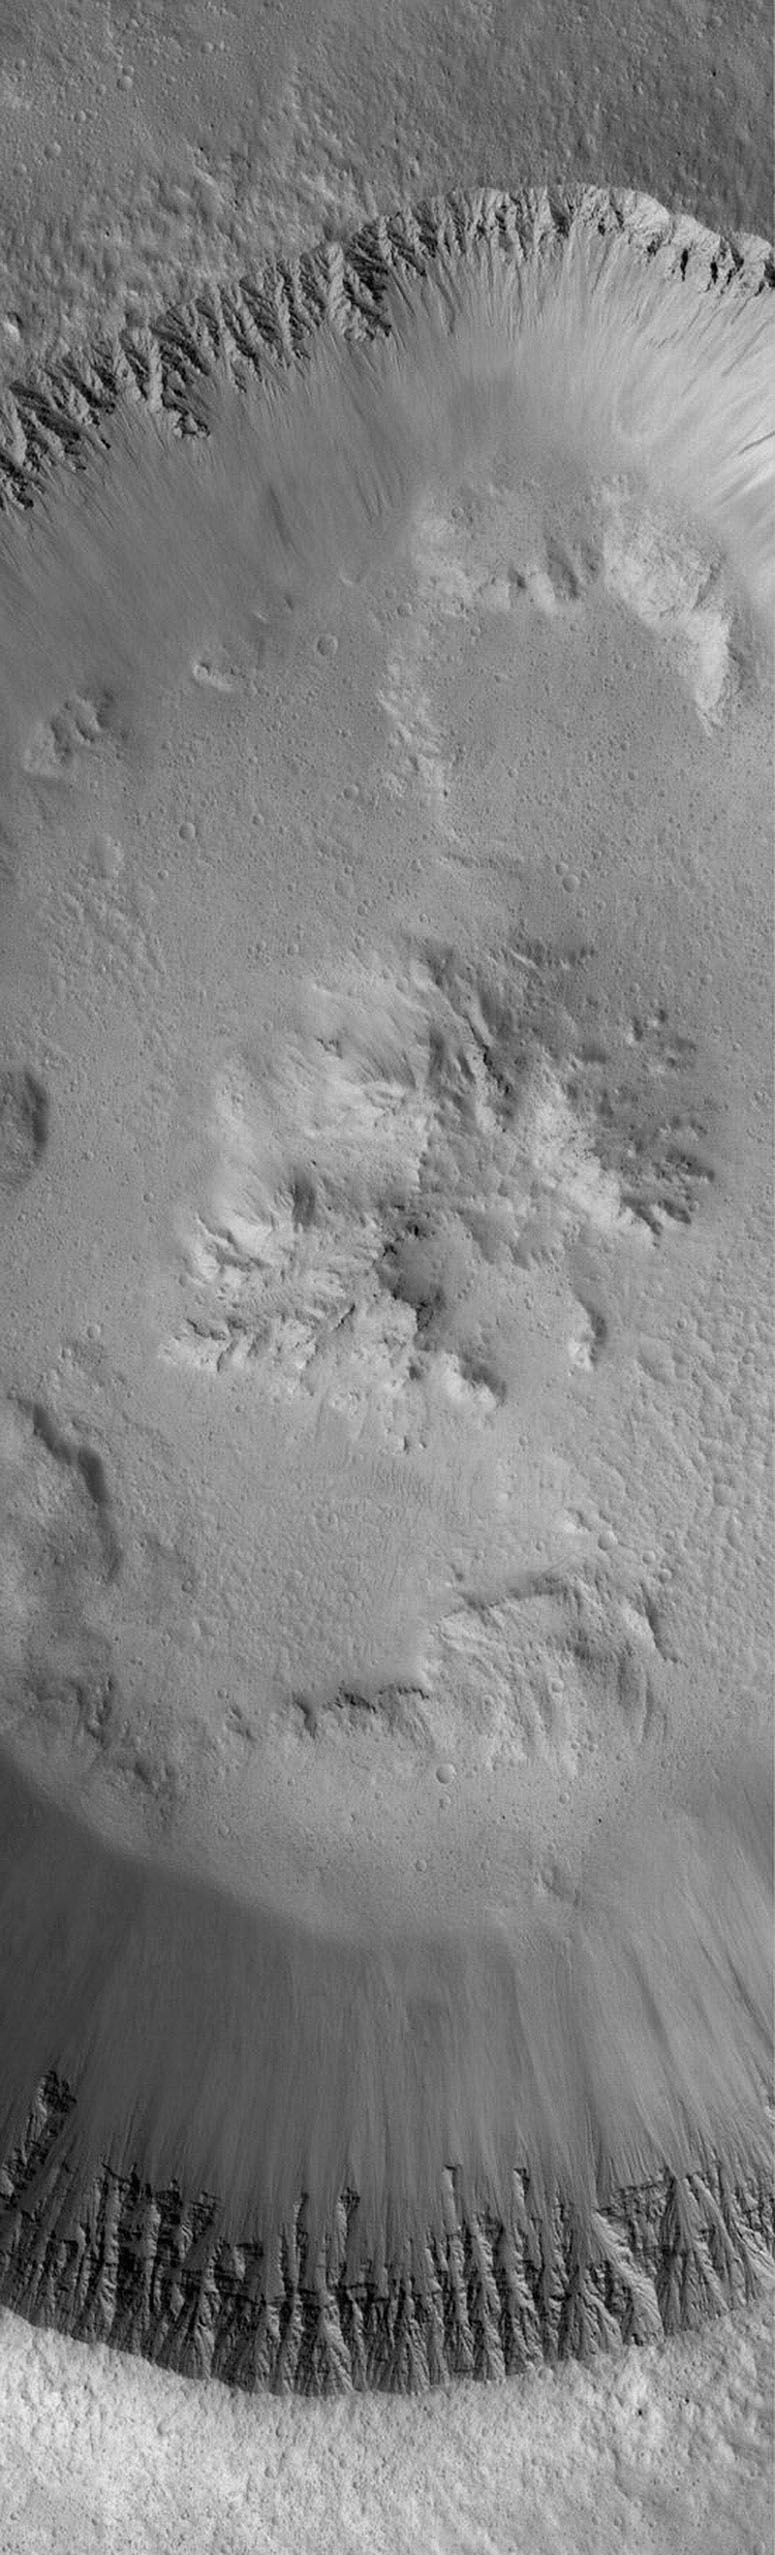 NASA's Mars Global Surveyor shows fine details in the walls and floor of a meteor impact crater located immediately west of the Lycus Sulci ridged terrain on Mars. The walls of the crater exhibit the finely-detailed layering of the local bedrock.